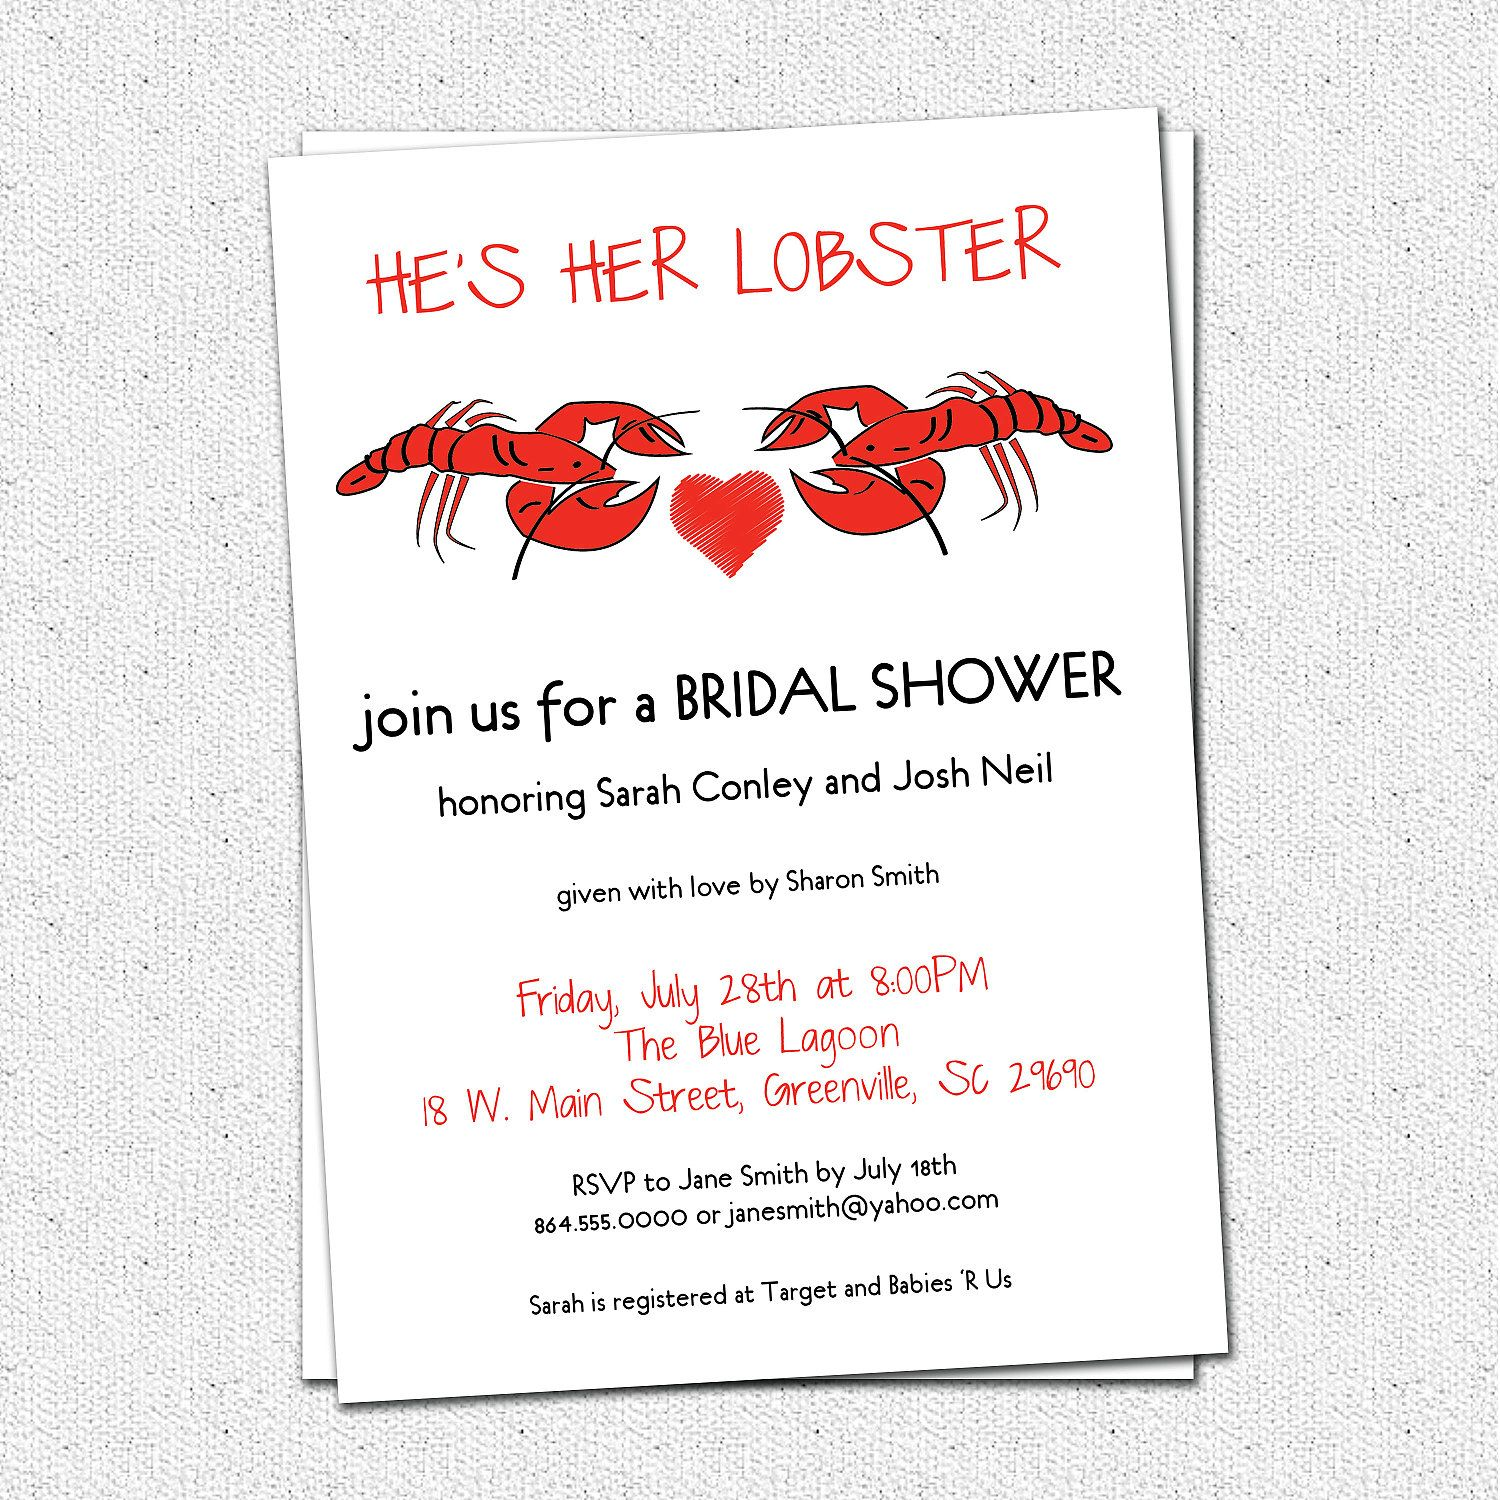 Bridal Couples Shower, Wedding Invitations Printable, Lobster Couple ...